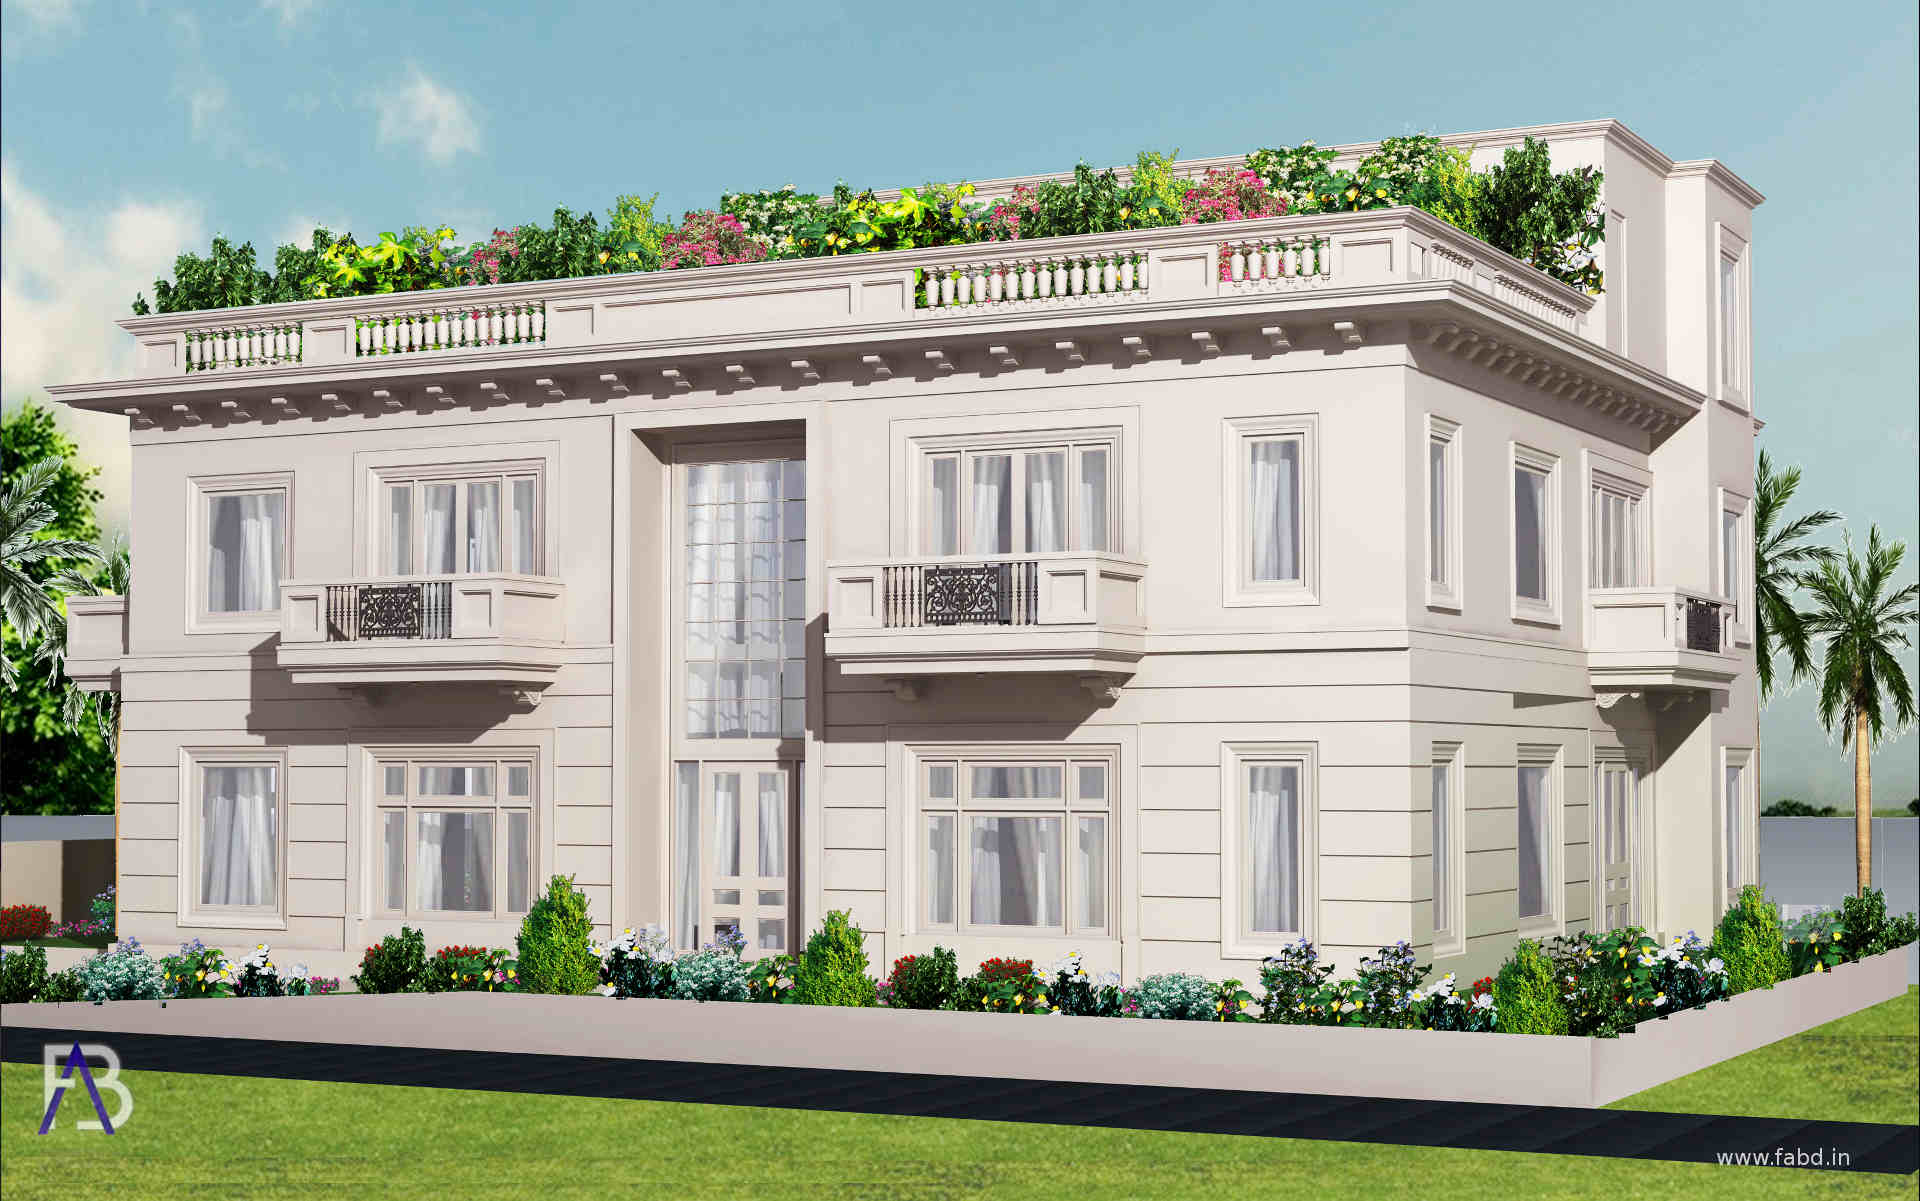 Elevation Side View Day Rendering